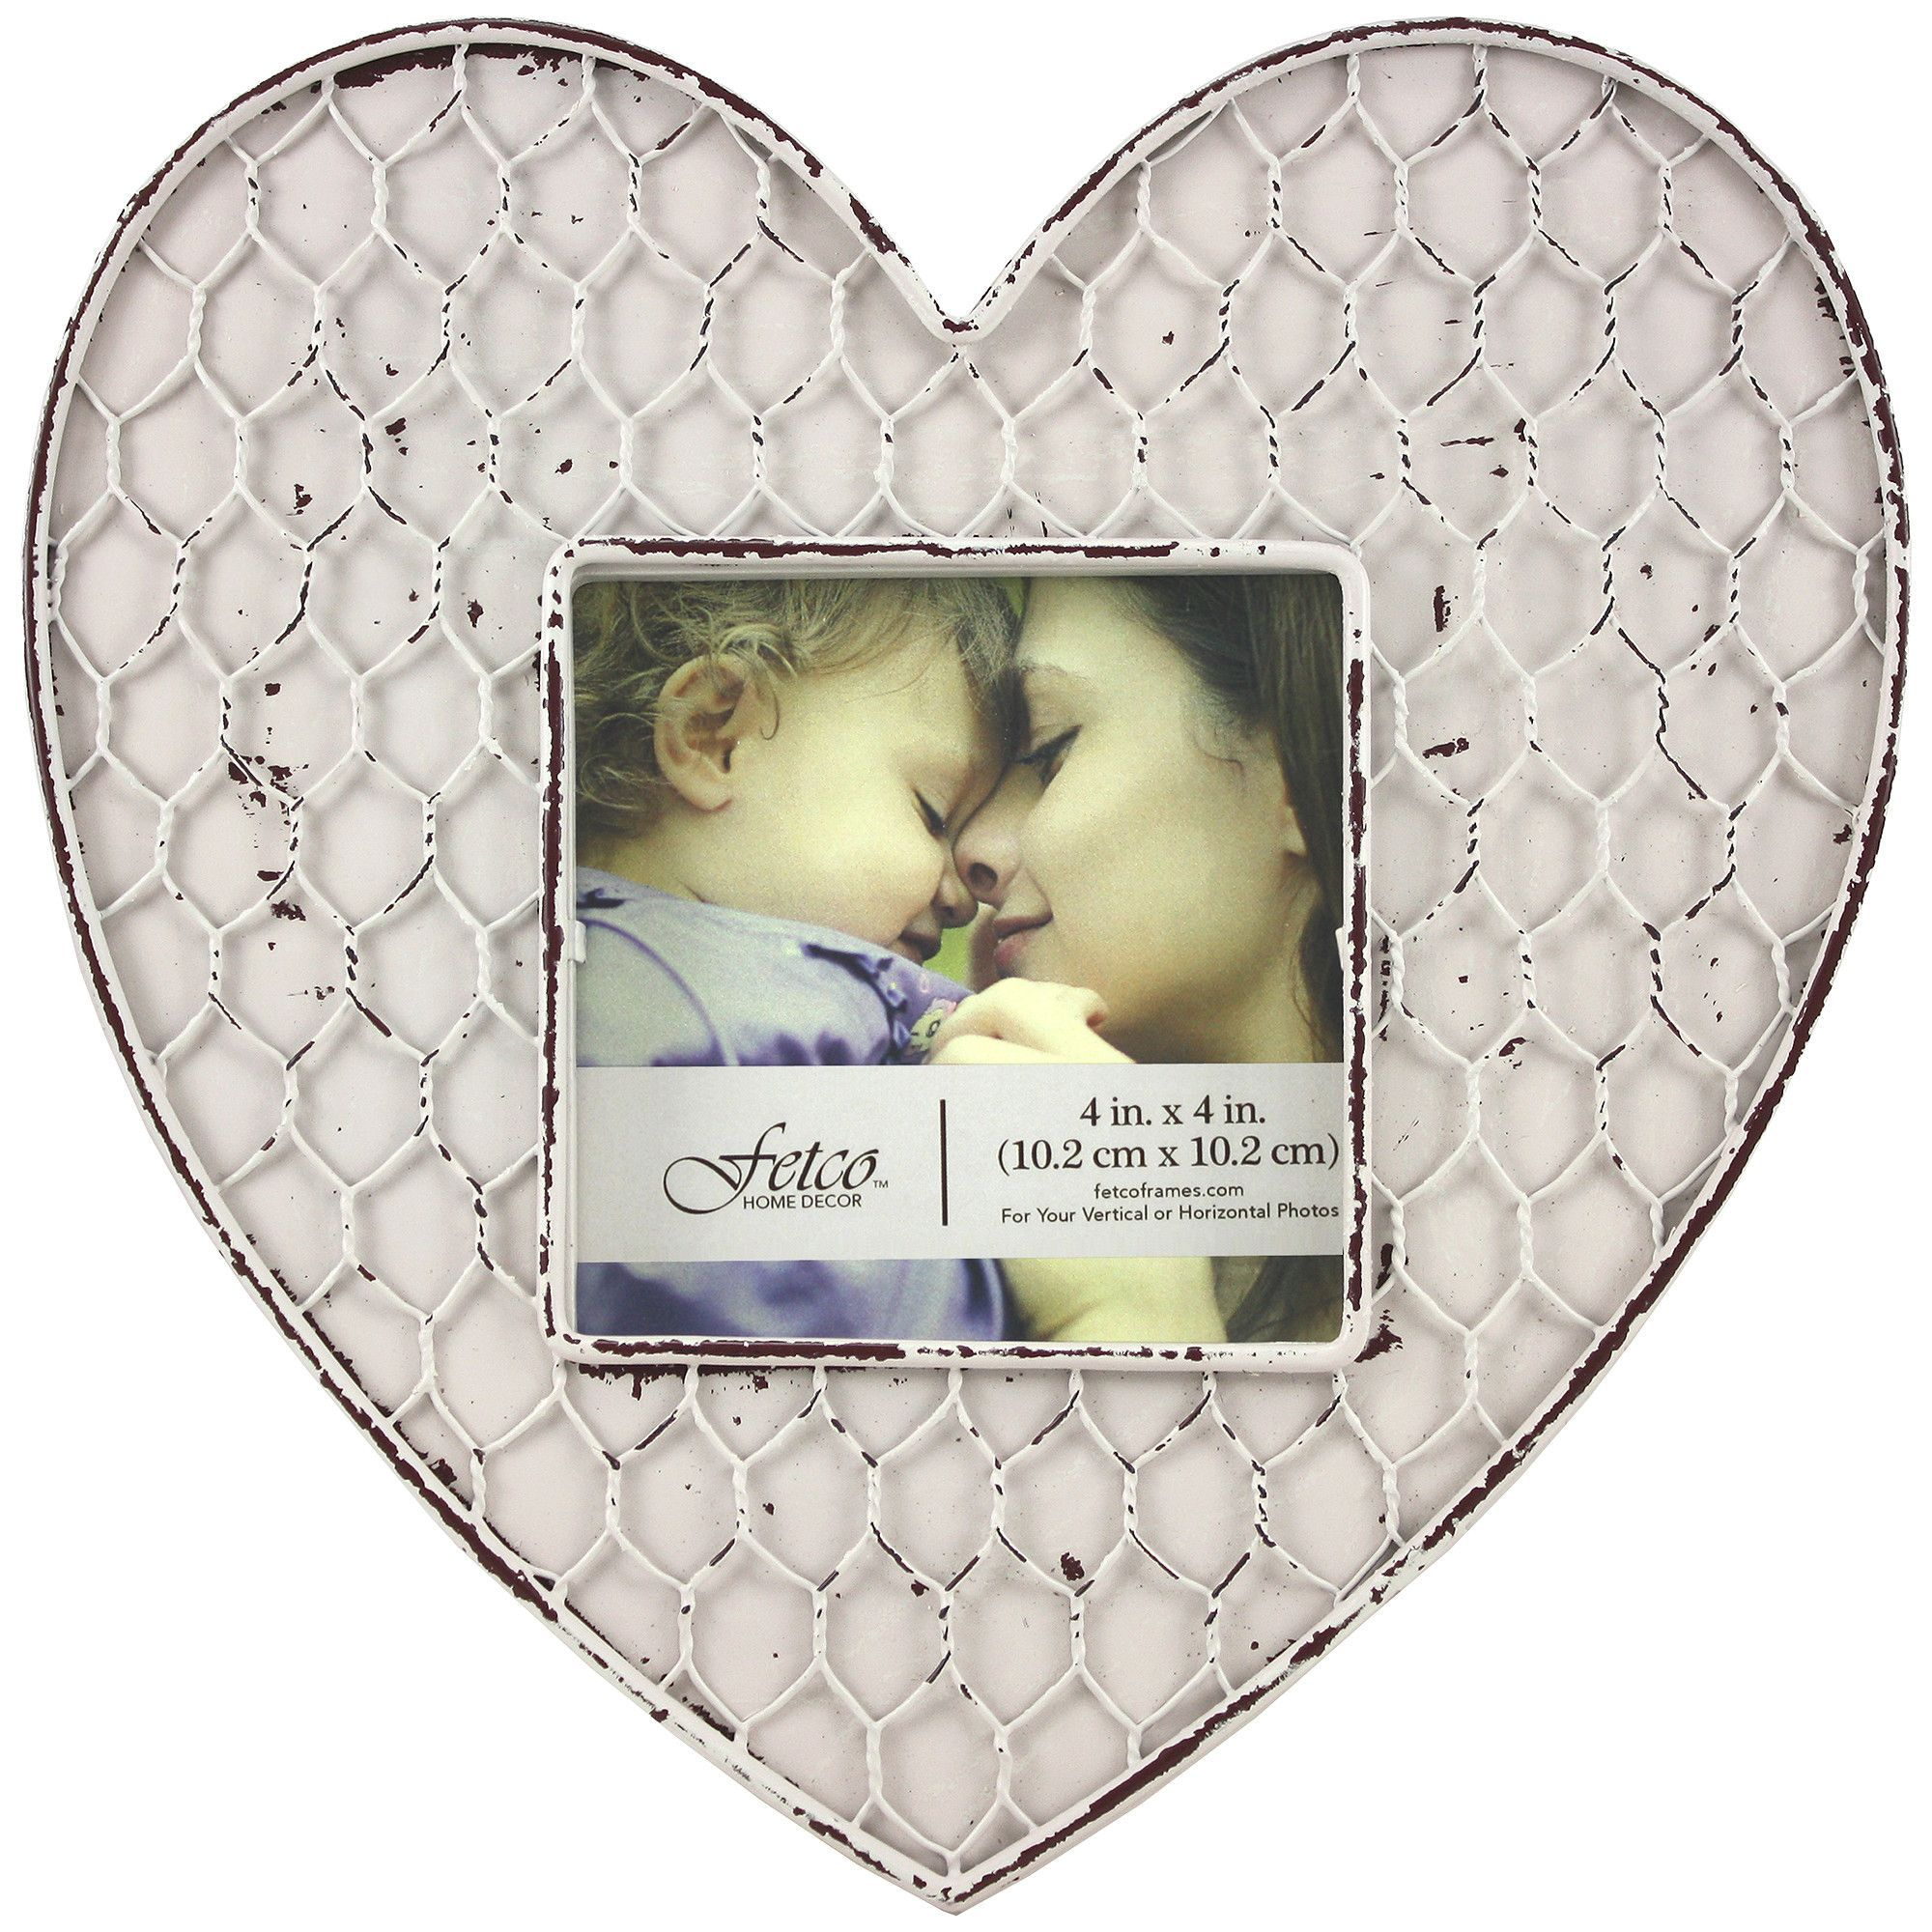 Heart Shaped Picture Frame | Products | Pinterest | Shape pictures ...